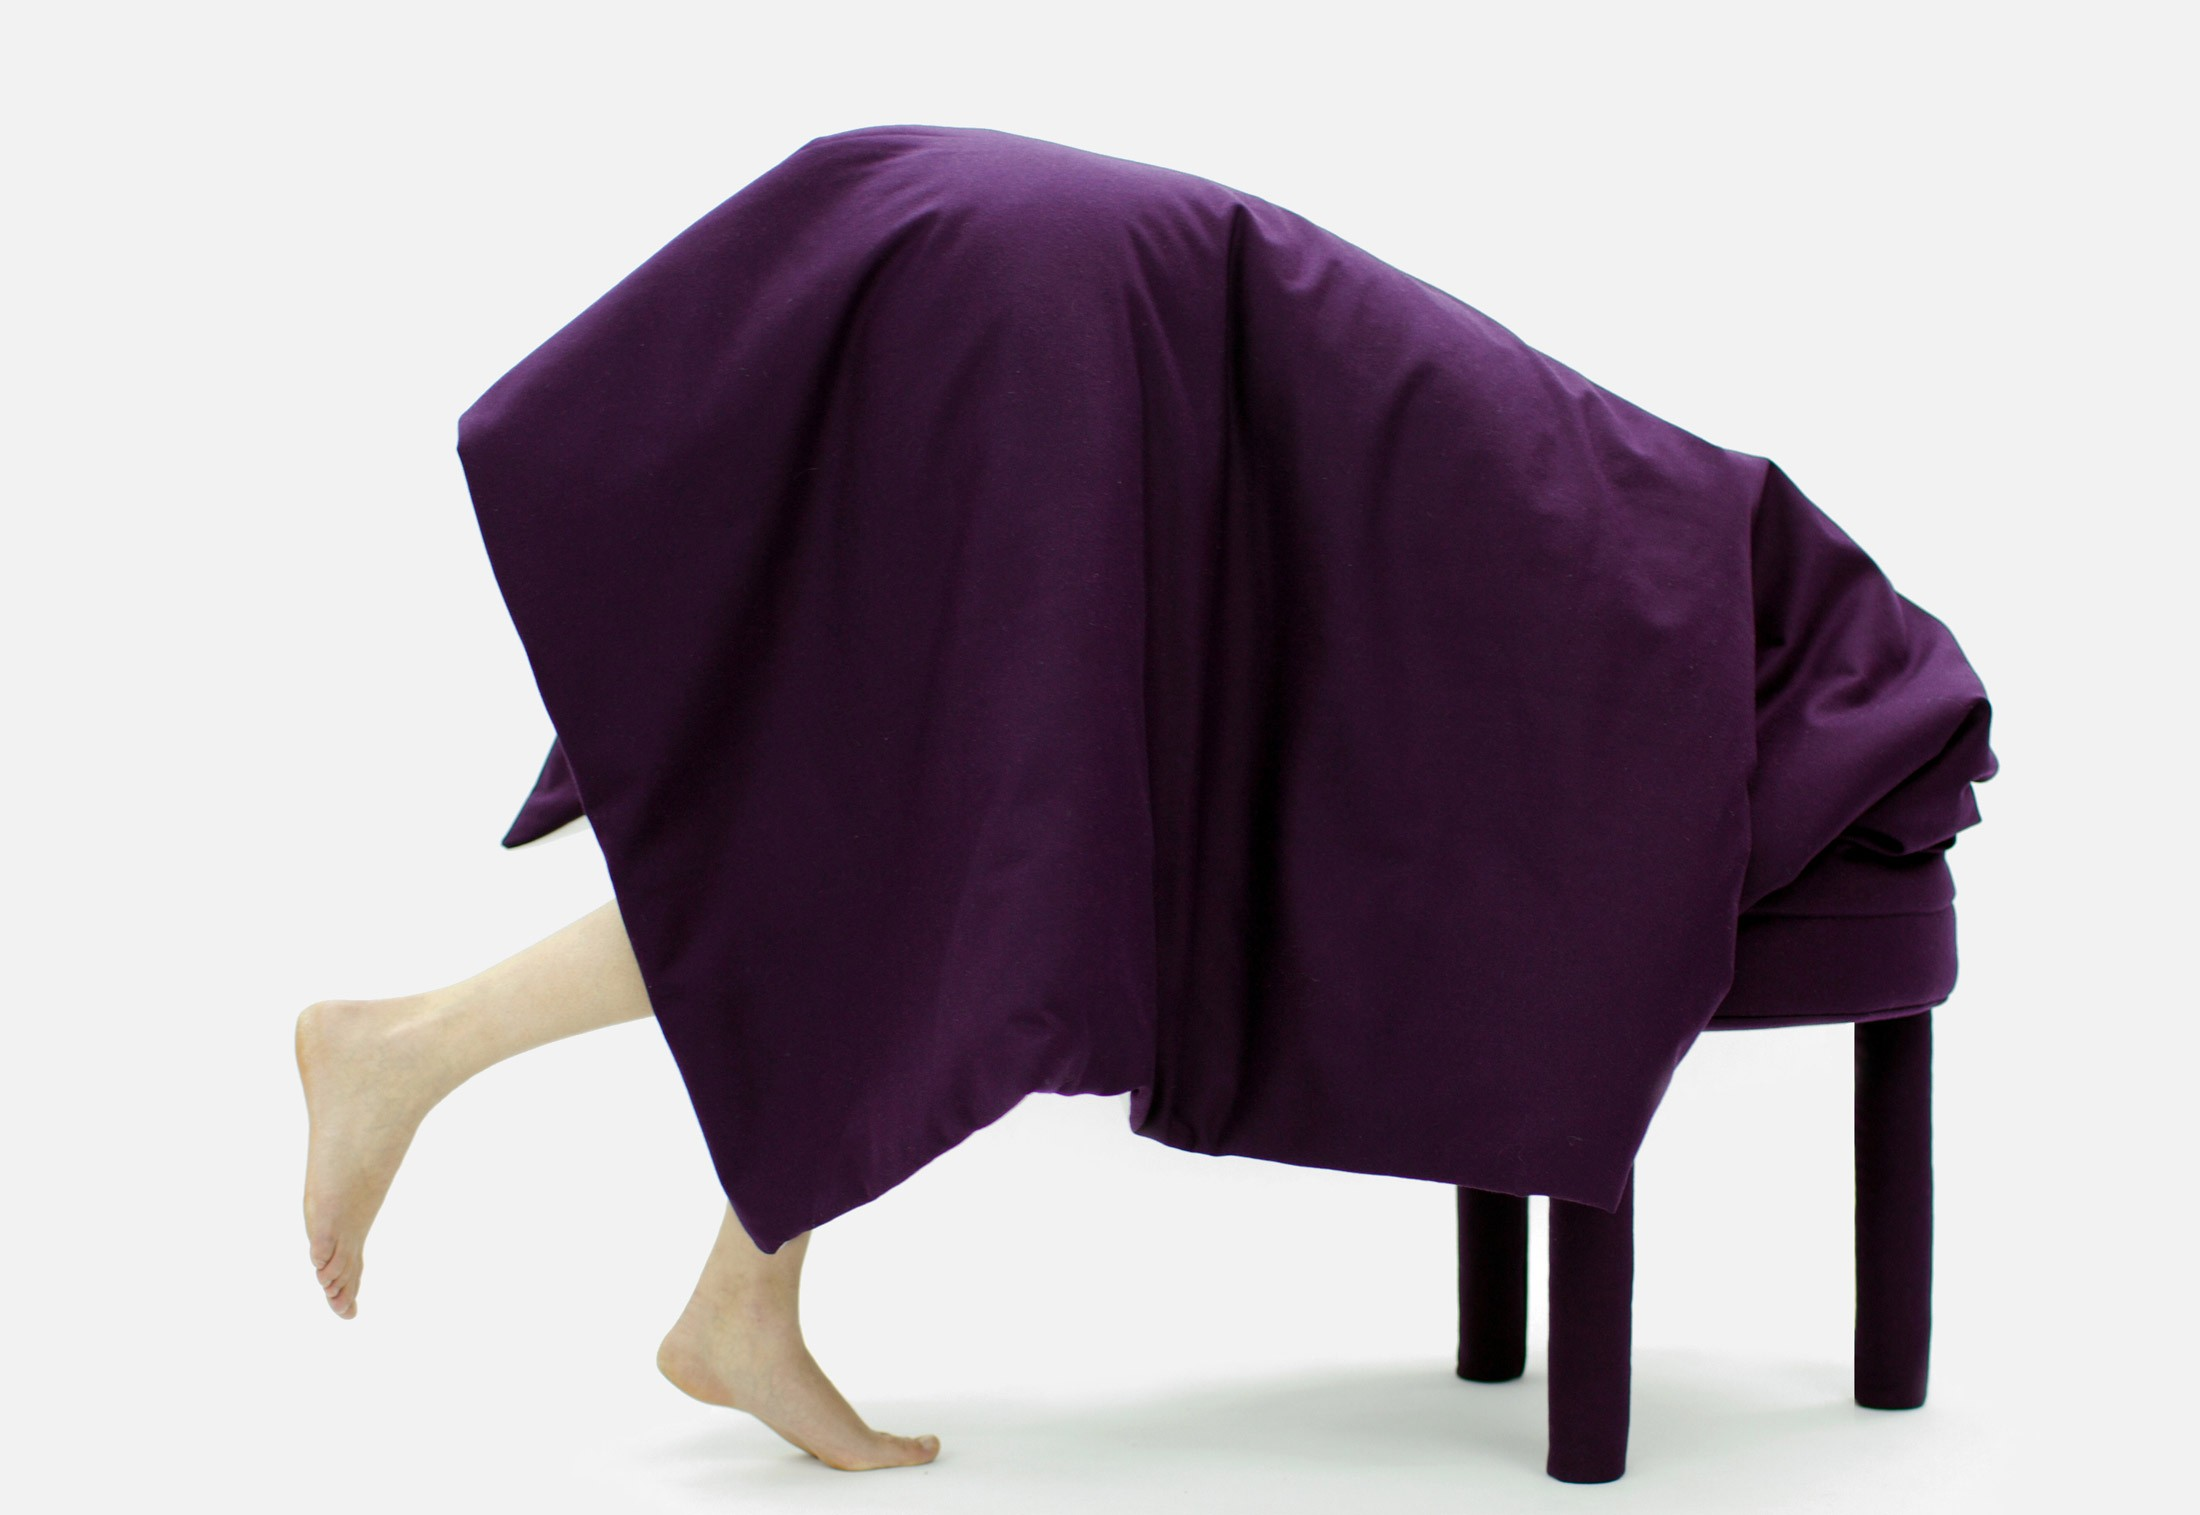 awesome-design-ideas-Collerette-Chair-Footstool-Blanket-in-One-3